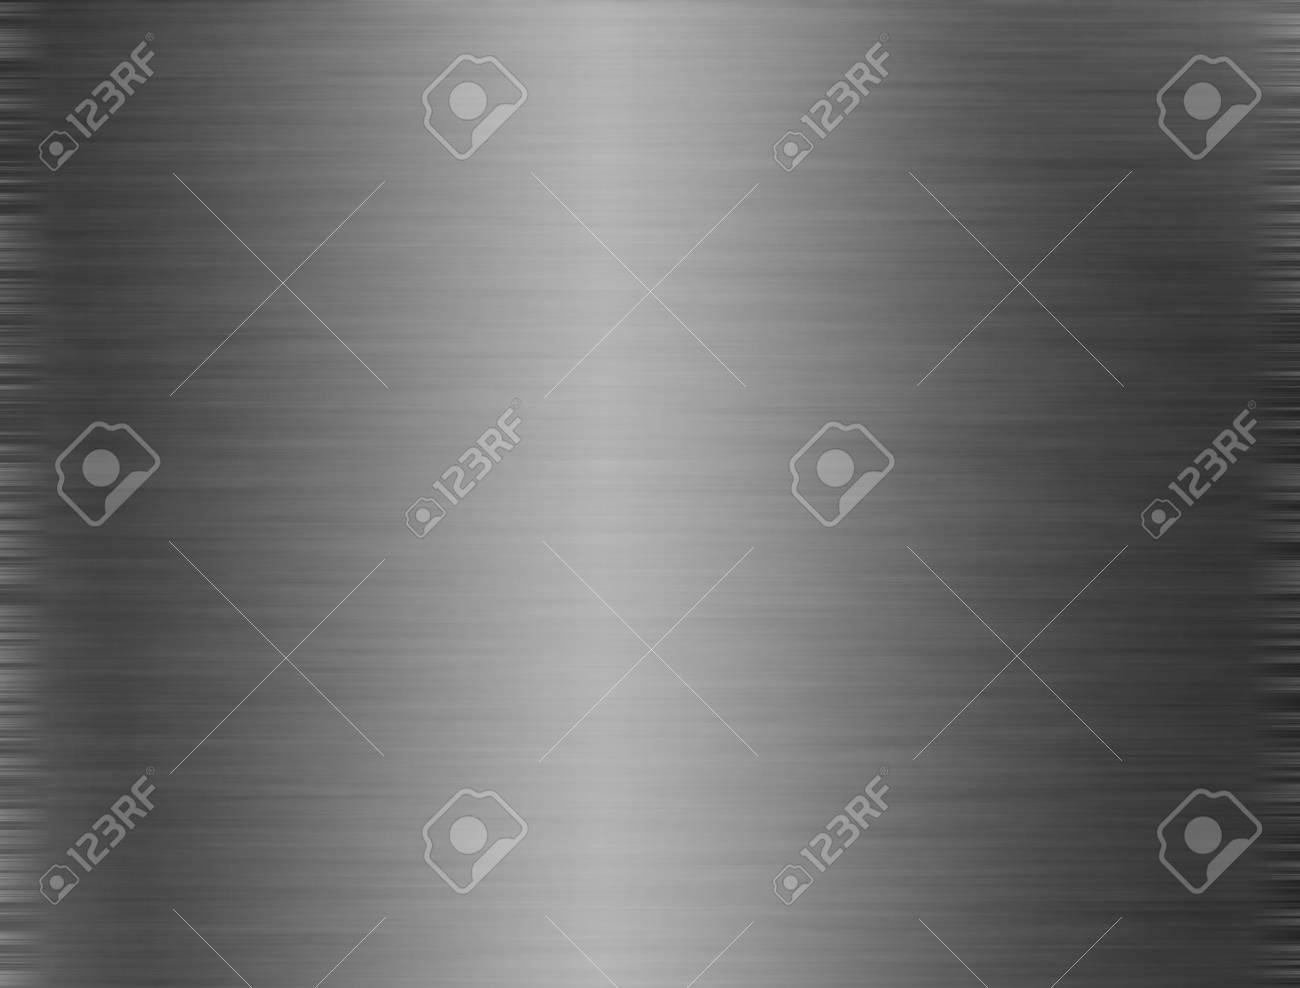 Black metal texture Worn Abstract Background Black Metal Texture Stock Photo 89462815 123rfcom Abstract Background Black Metal Texture Stock Photo Picture And